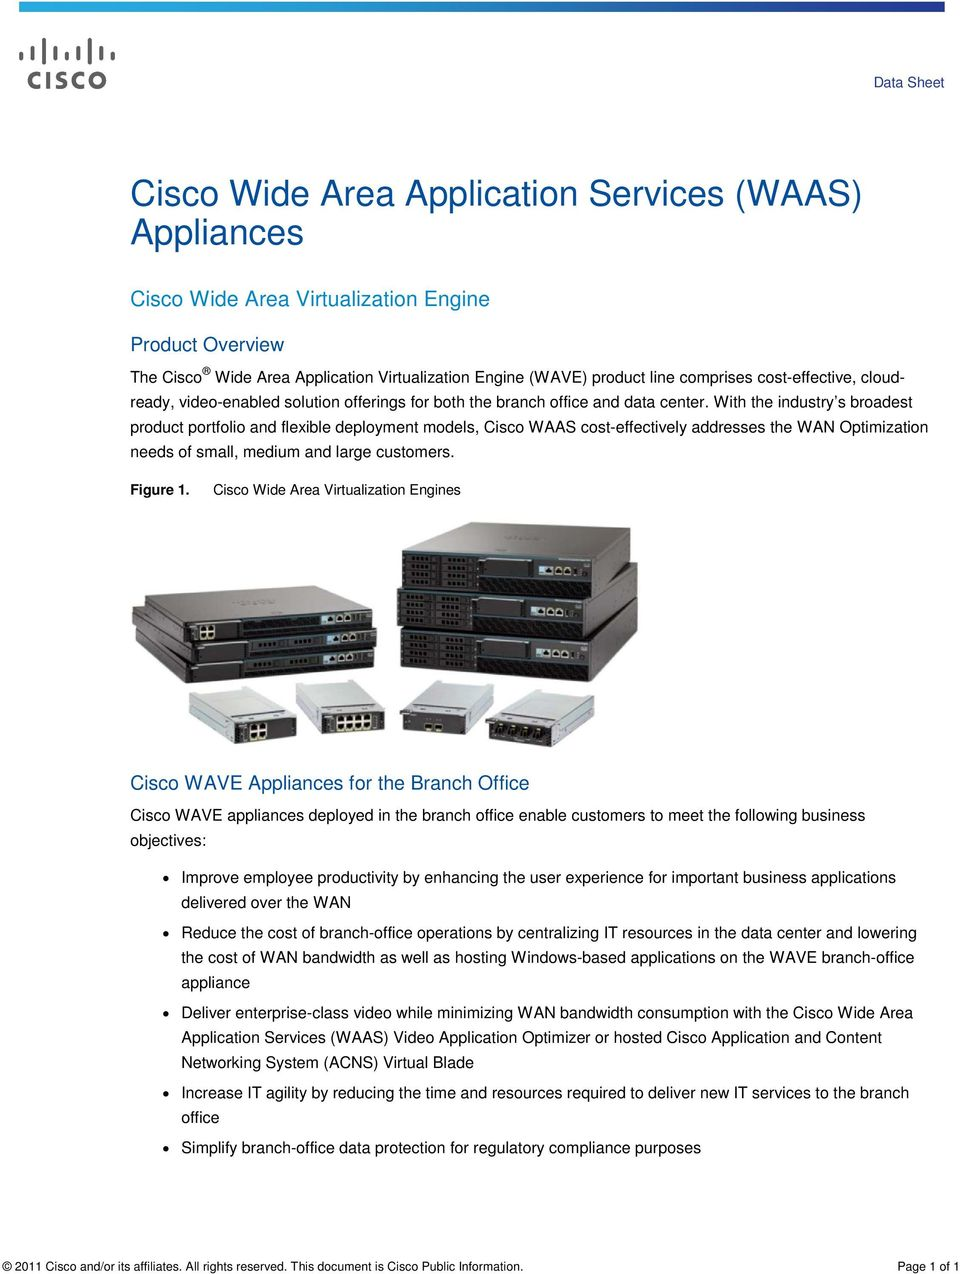 With the industry s broadest product portfolio and flexible deployment models, Cisco WAAS cost-effectively addresses the WAN Optimization needs of small, medium and large customers. Figure 1.